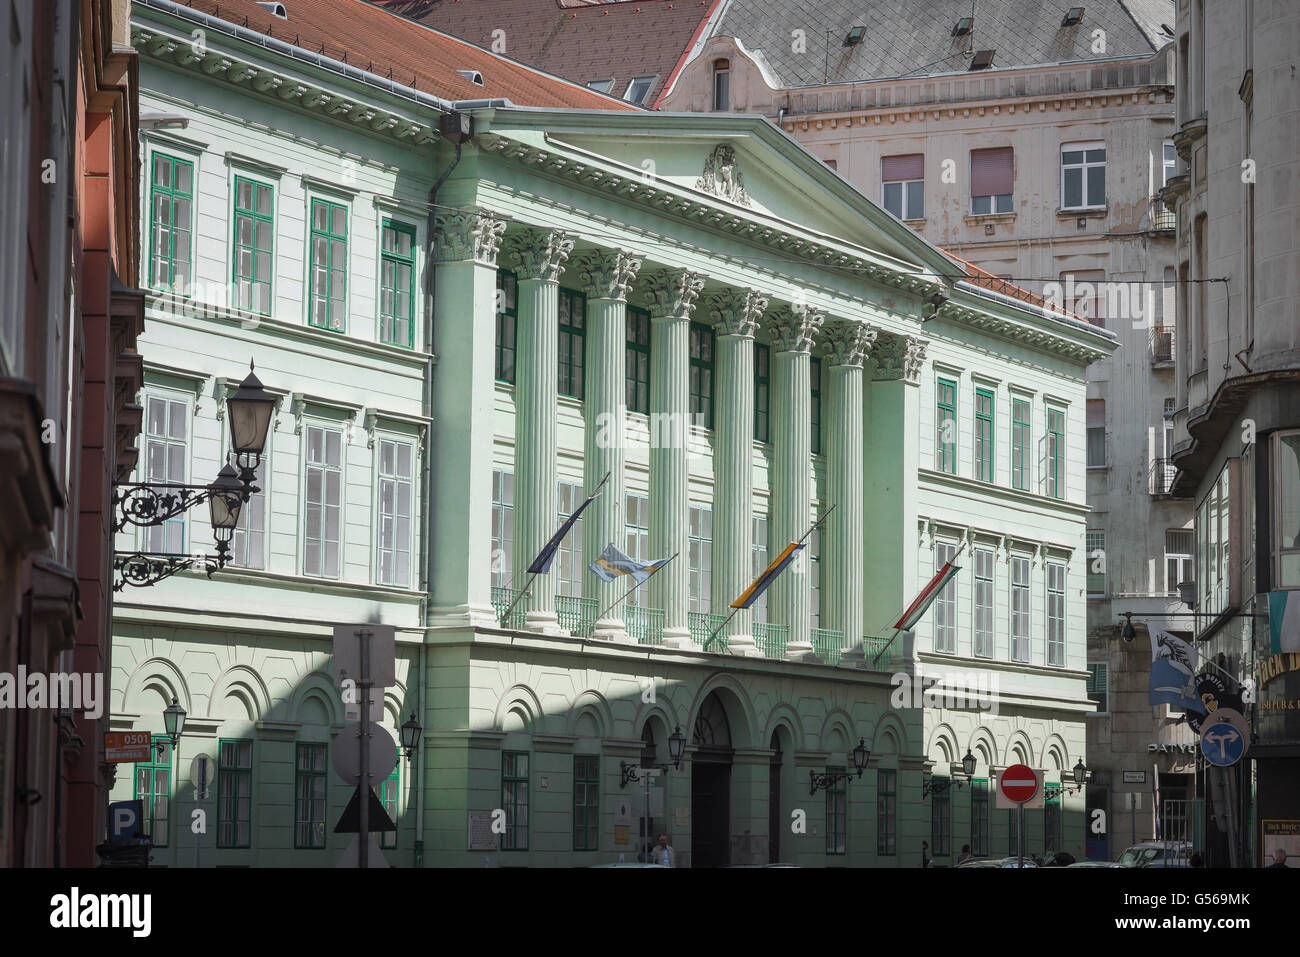 Belvaros Budapest, Pest County Hall in the Belvaros area of central Budapest, Hungary. - Stock Image